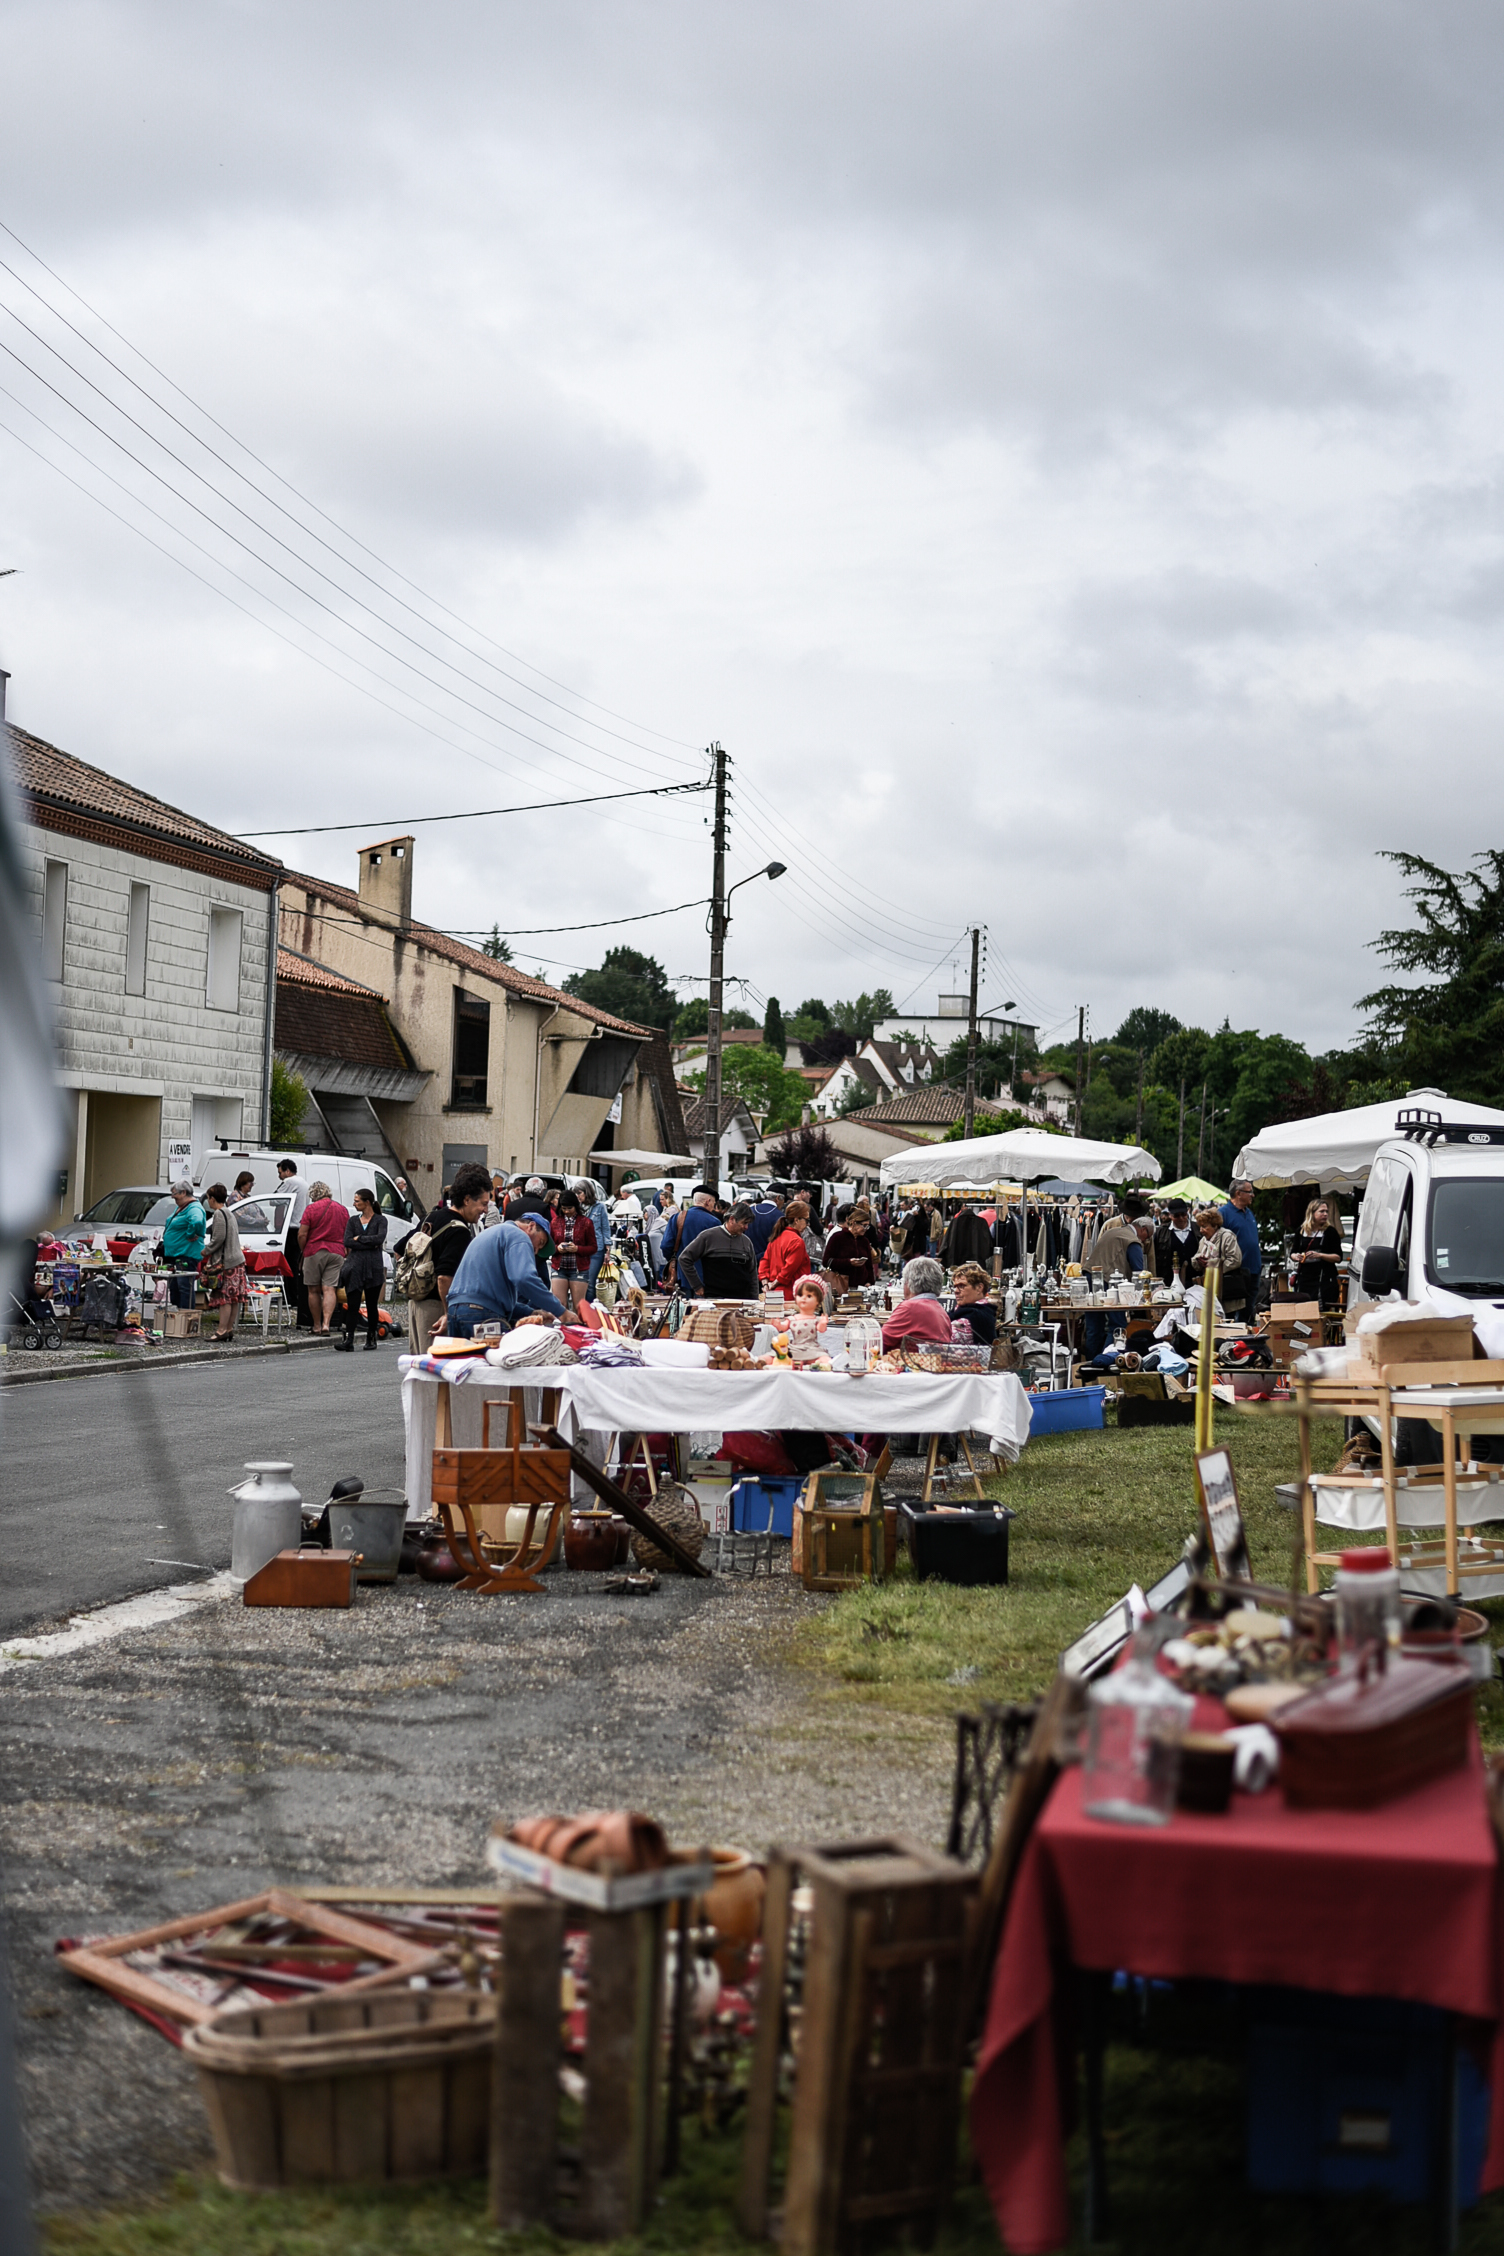 A day spent shopping at a traditional French flea market in Eymet, France!